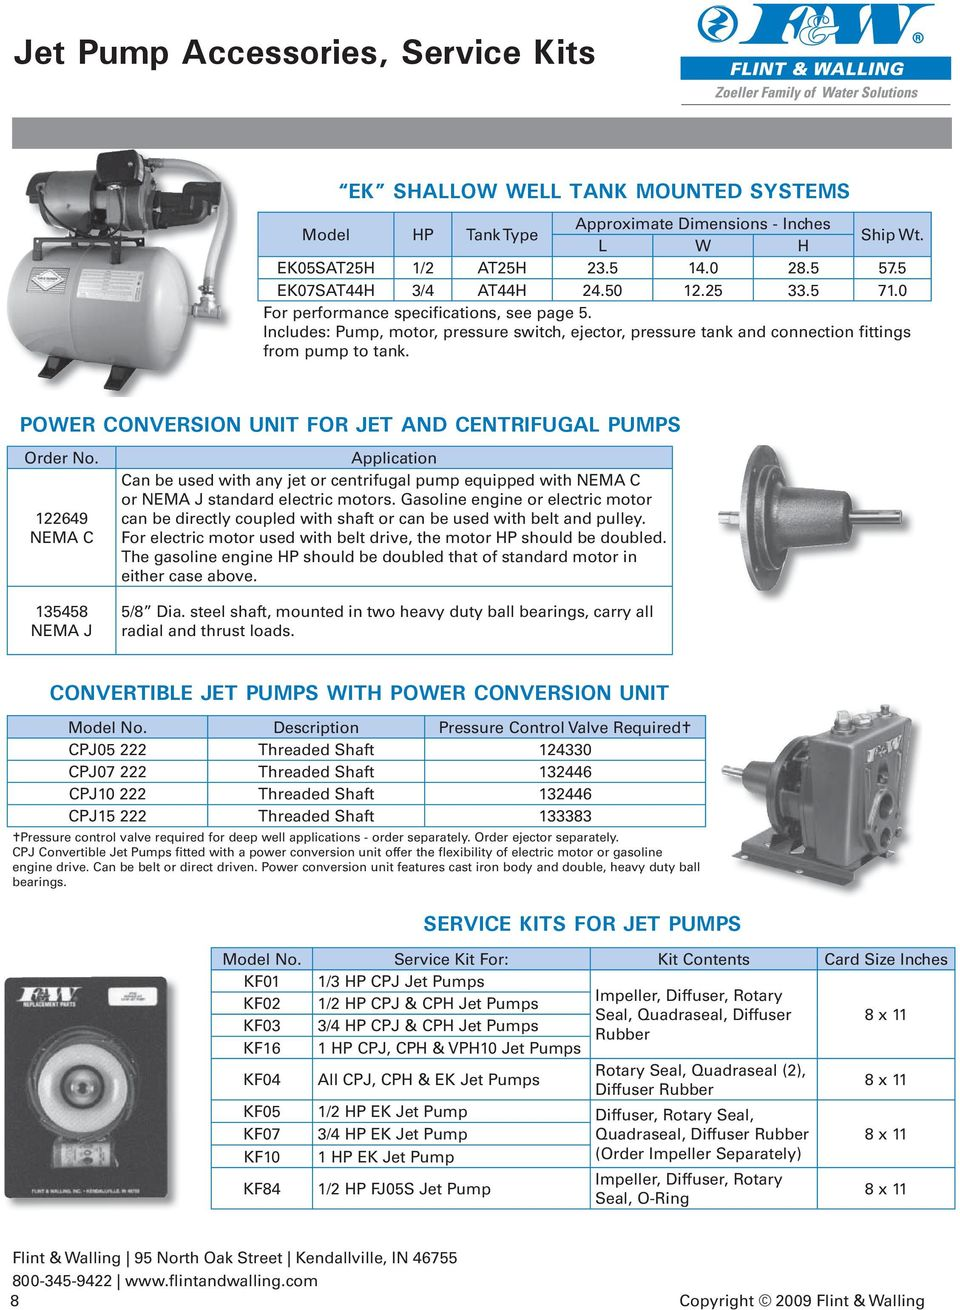 POWER CONVERSION UNIT FOR JET AND CENTRIFUGAL PUMPS Order No.